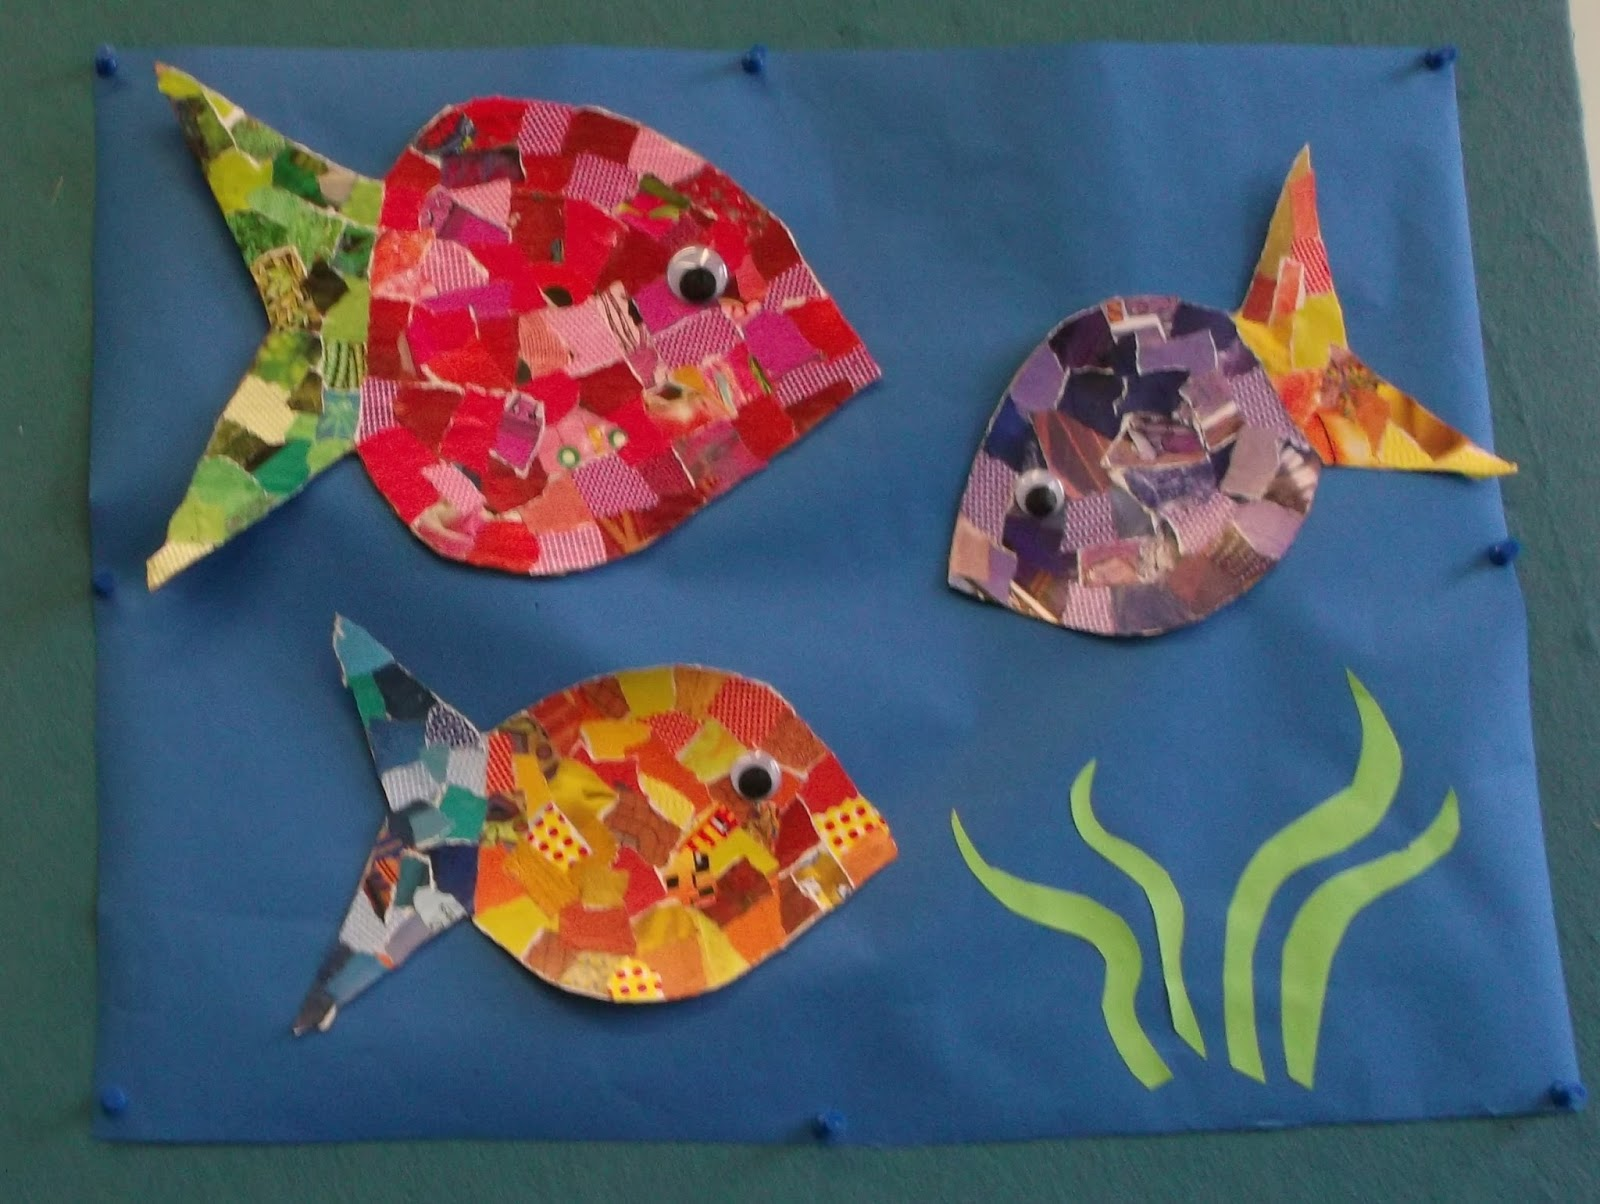 Arts And Crafts Ideas For Kids With Paper Part - 41: Simple And Easy Paper Collages For Kids